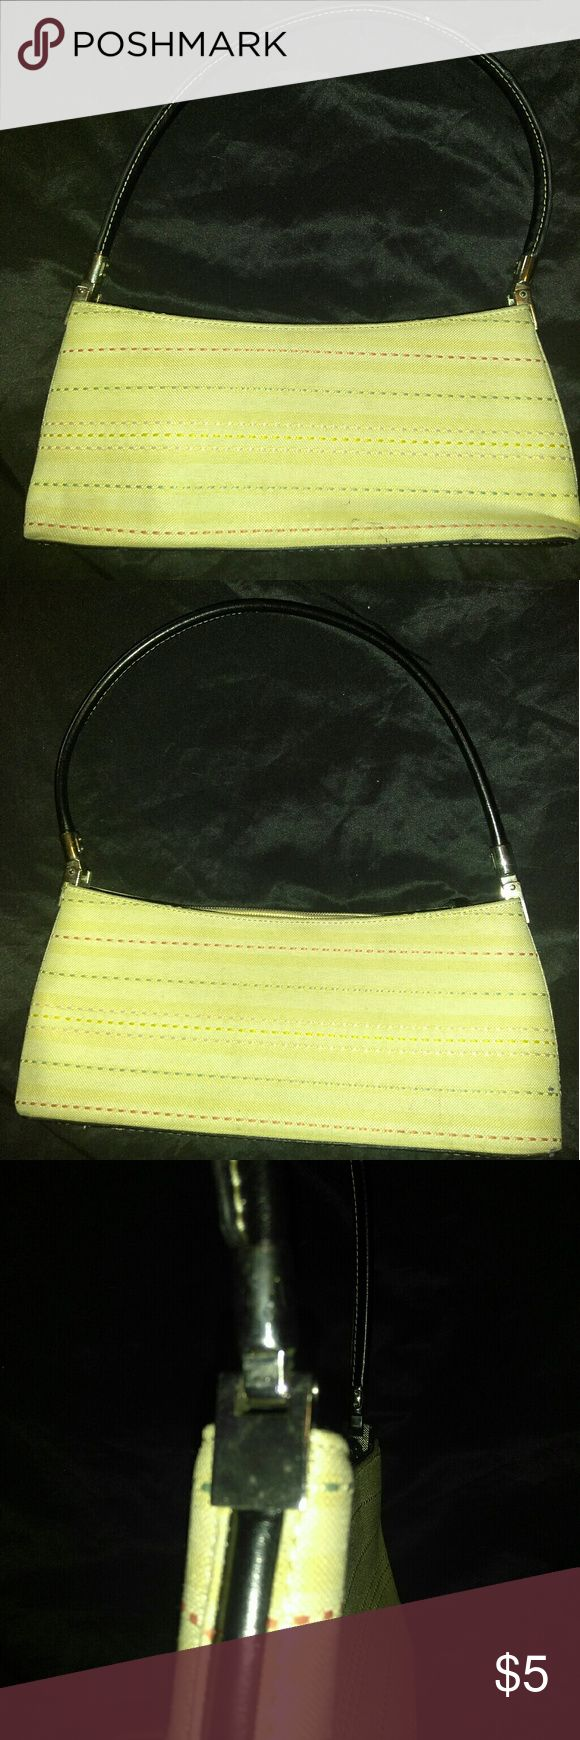 Cream shoulder bag beautiful small shoulder bag. Great quality stiff bag. This bag has a few Light stains as shown on the pictures above. Clean inside and good straps. No brand. no brand Bags Shoulder Bags